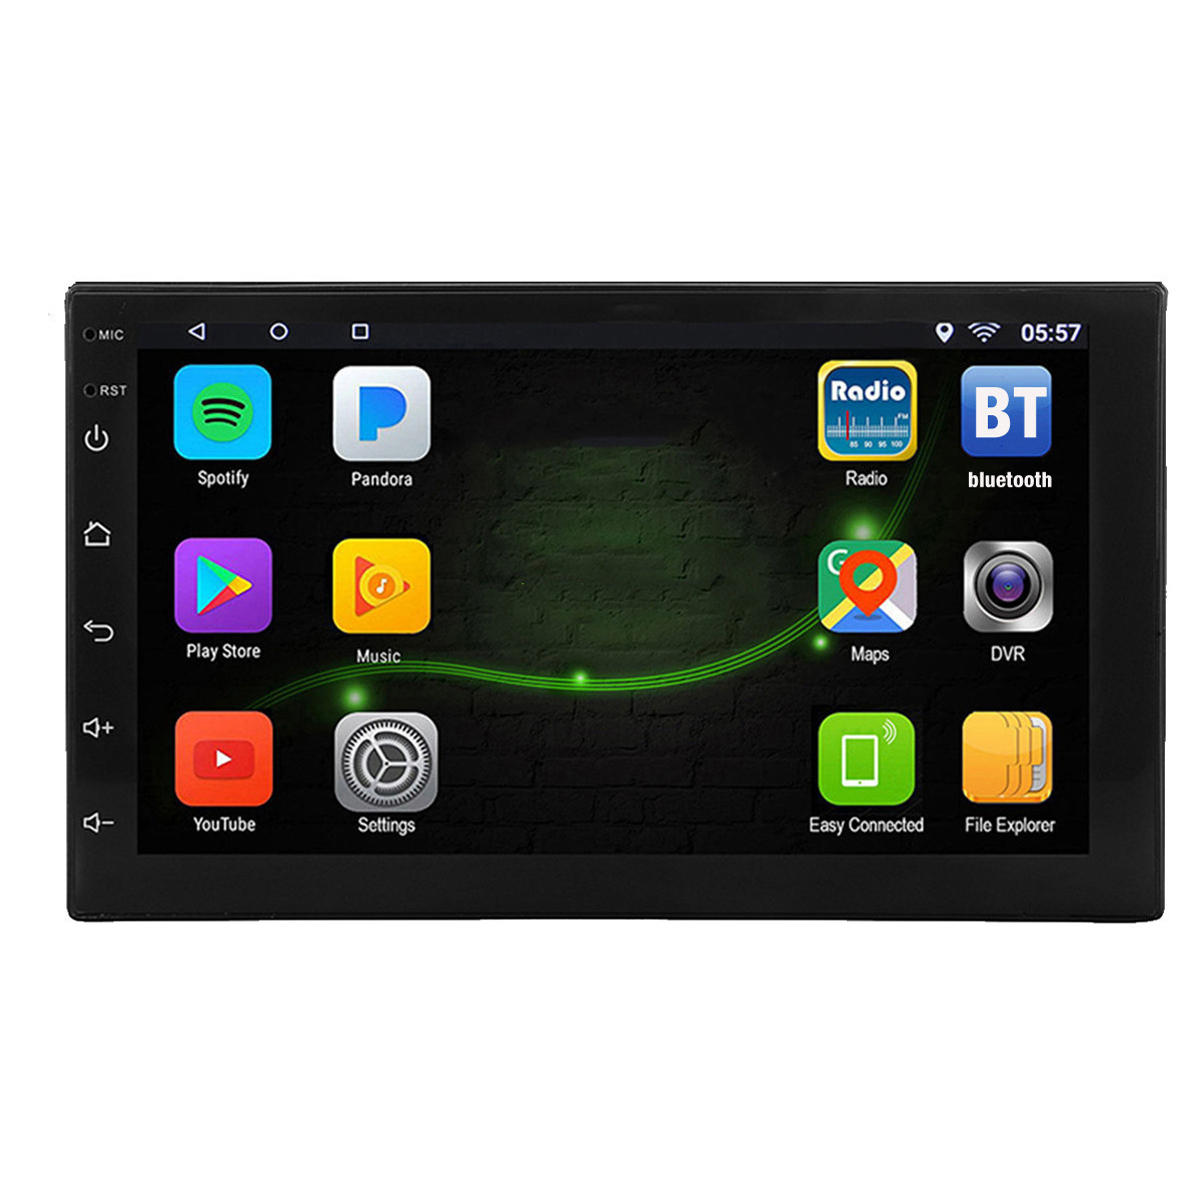 7 Inch 2 DIN for Android 8 1 Car Stereo Radio 1+16G Quad Core MP5 Player  2 5D Touch Screen WiFi GPS AM bluetooth